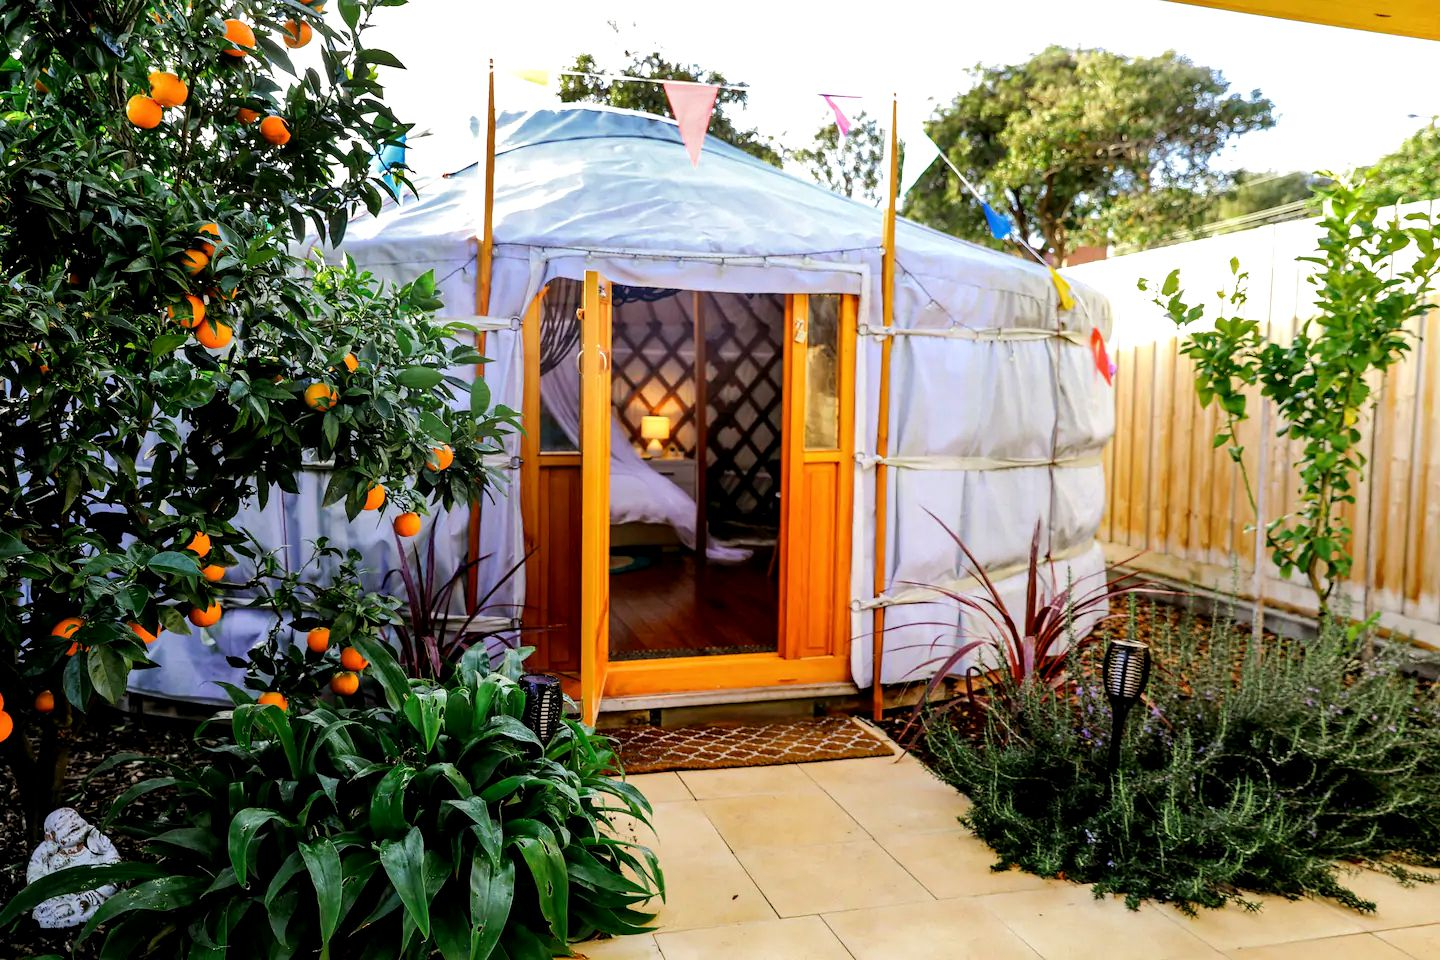 Glamping? Mornington Peninsula? This gorgeous yurt rental with modern features is perfect for romantic getaways. Melbourne is close by for day trips!